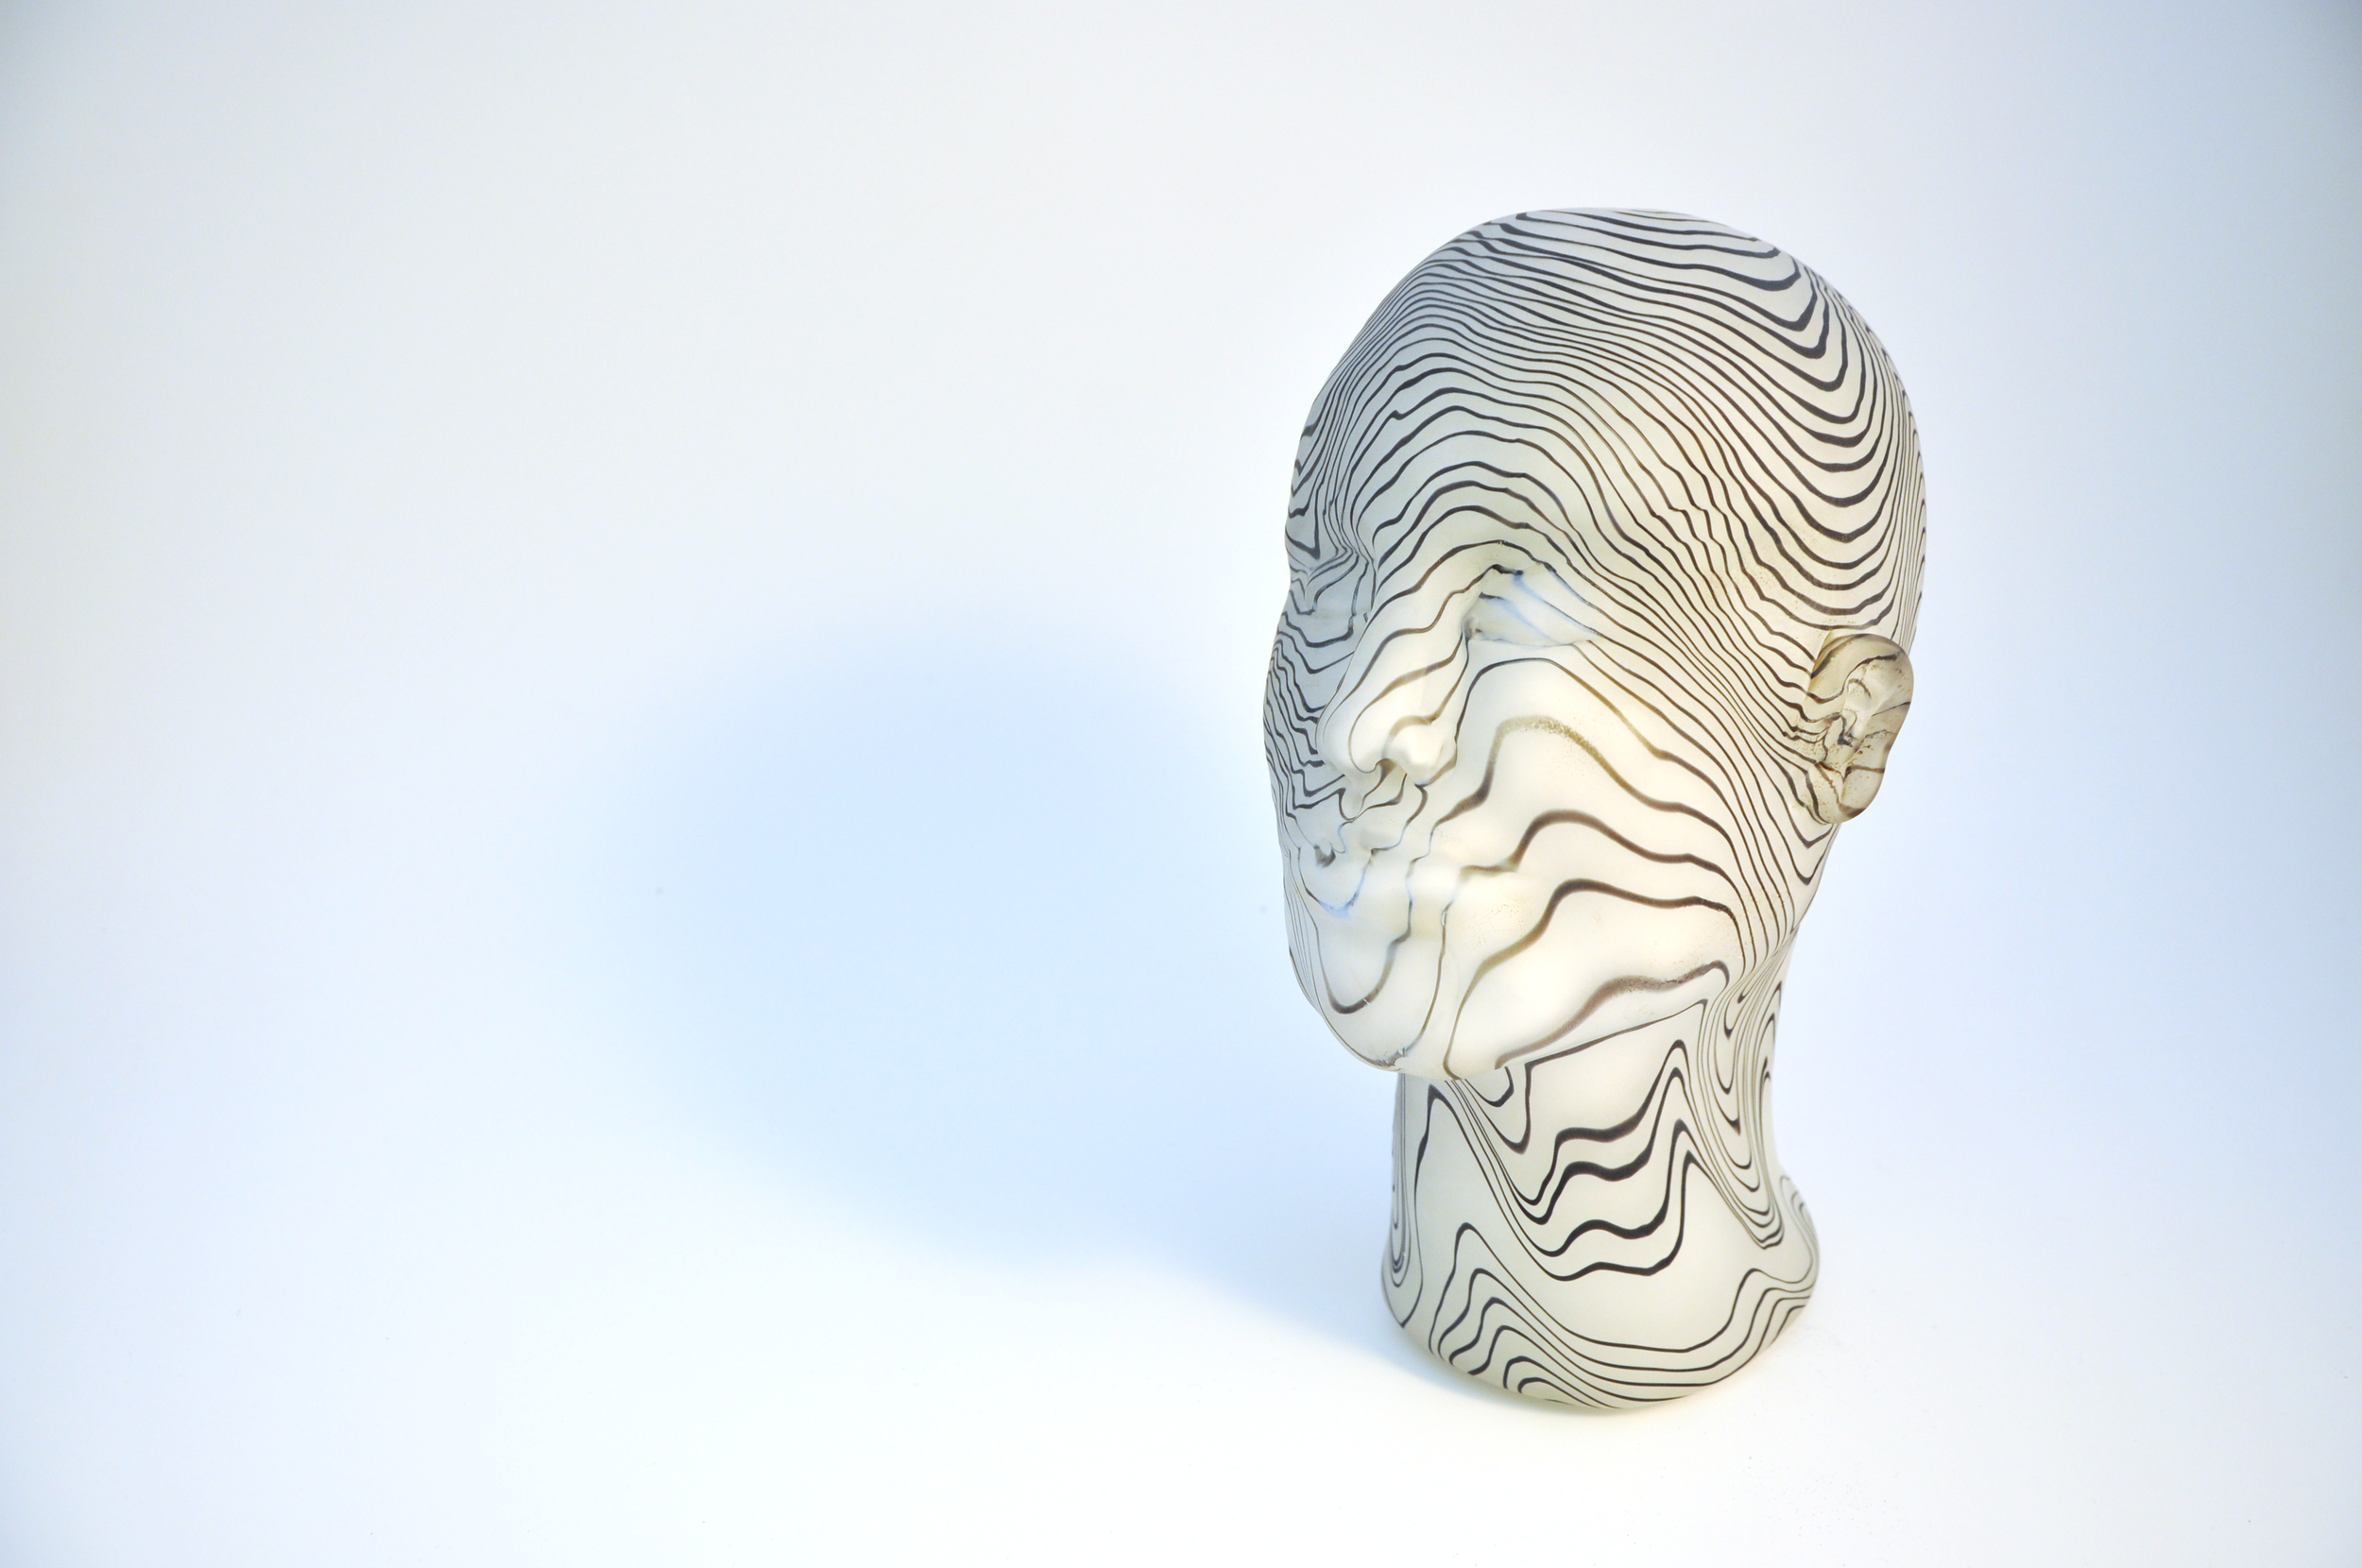 Topographic Head (2), Hot sculpting, blown glass. February 2019.